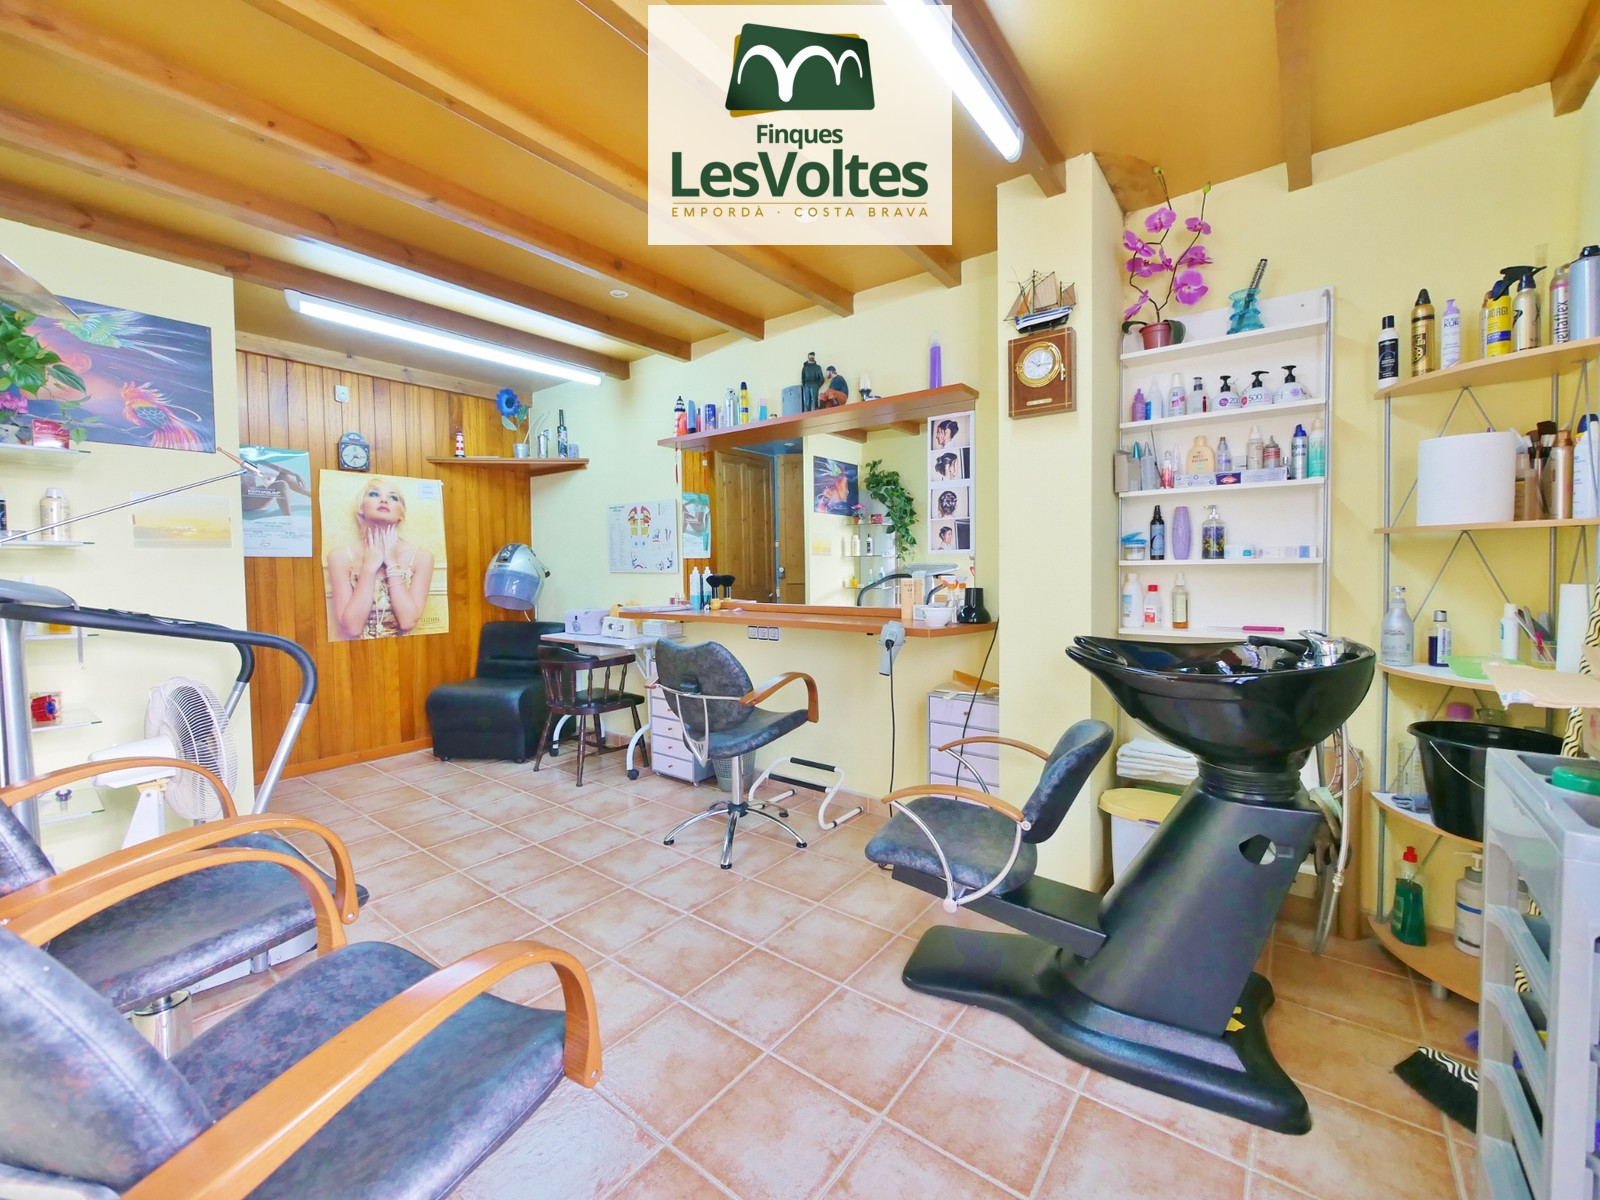 LOCAL FULLY EQUIPPED AND RENOVATED TO RENT IN LLOFRIU. PREPARED FOR AESTHETICS AND PERUQUERIA.